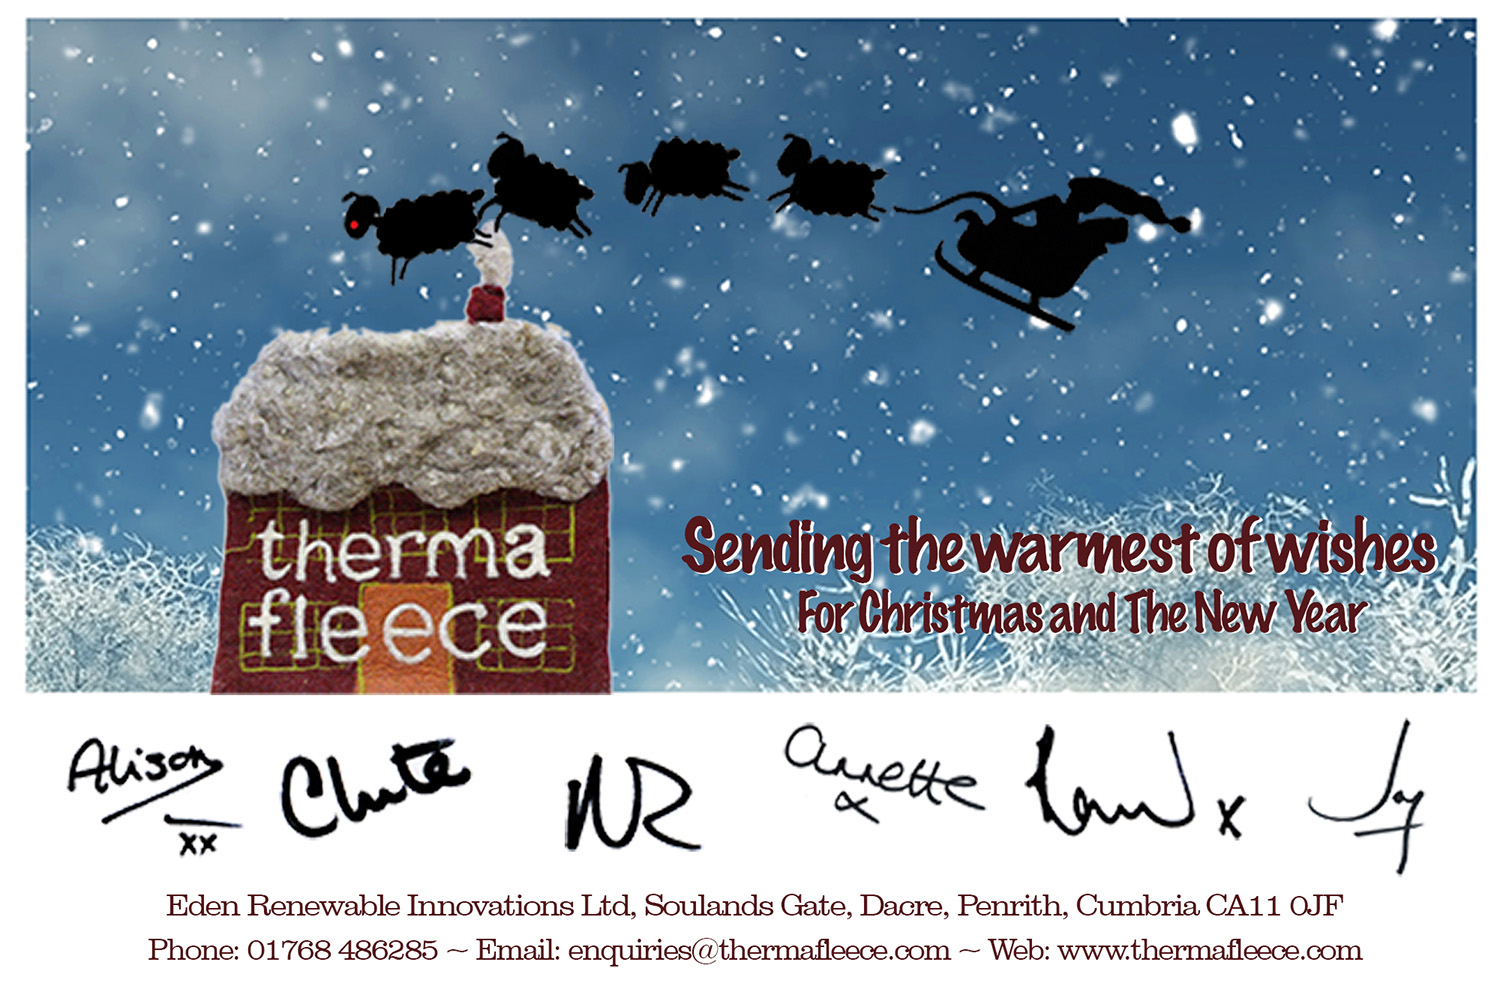 Merry Christmas<br>From all <br>at Thermafleece